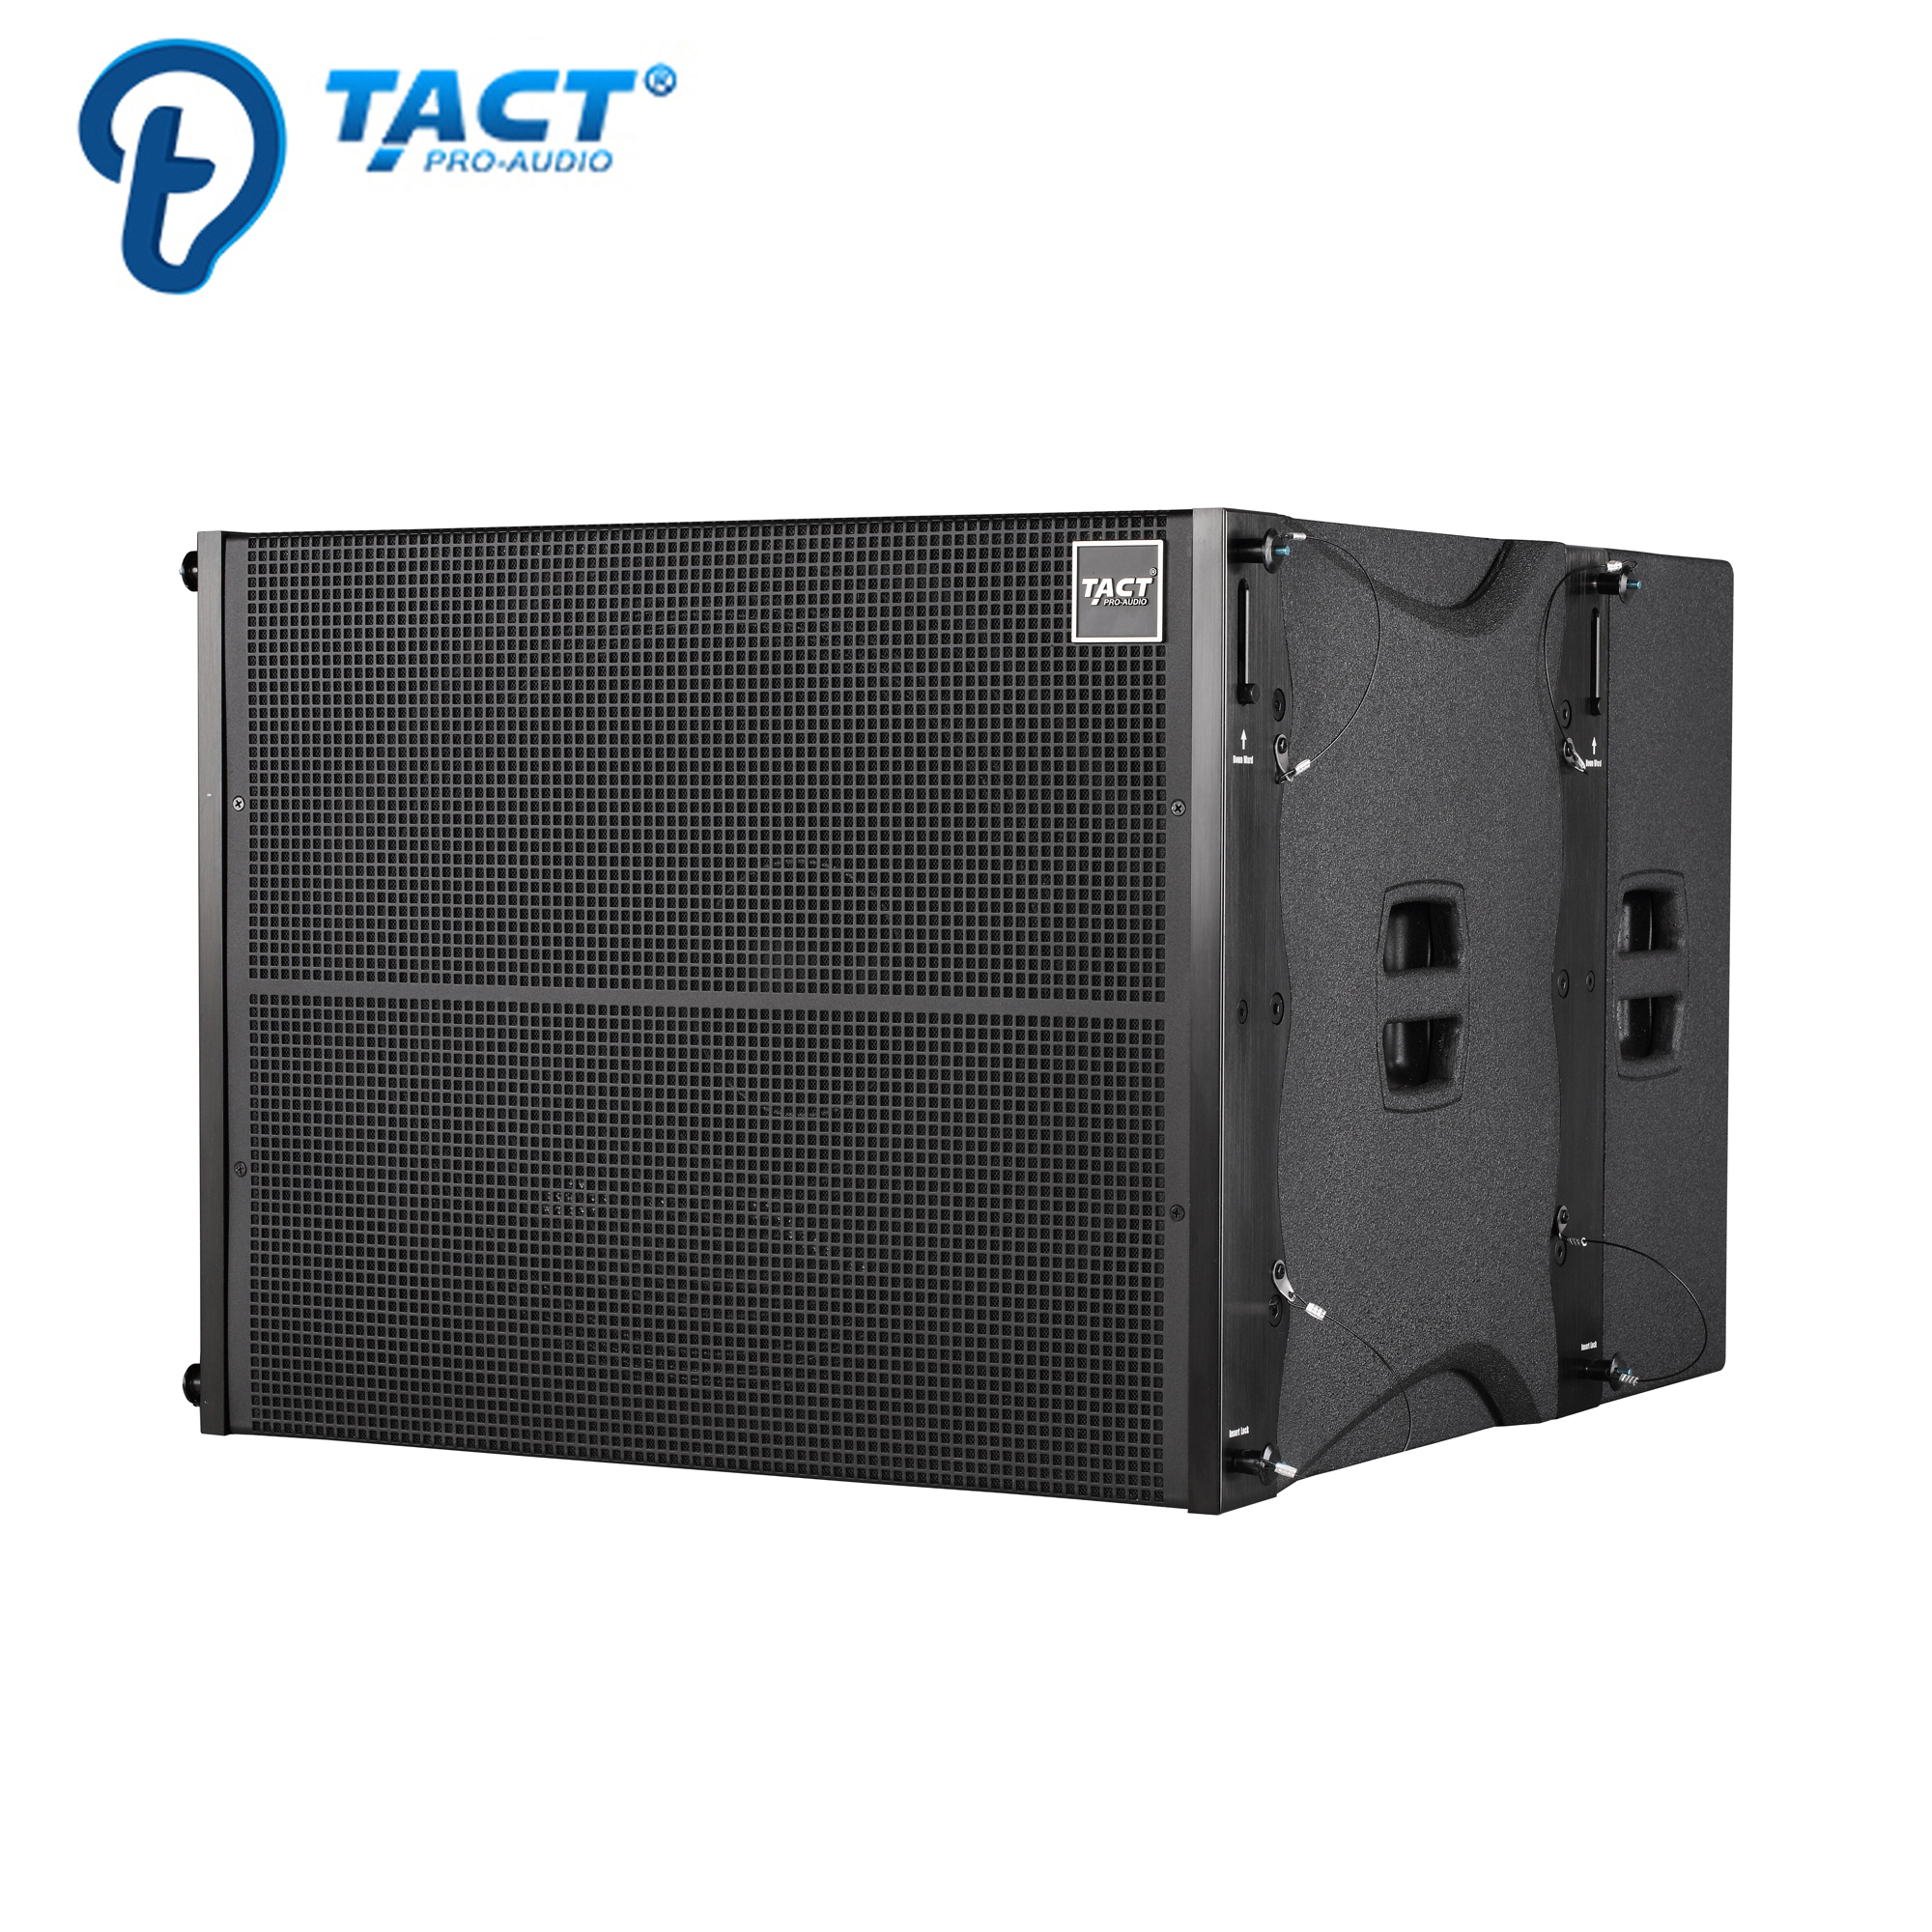 Professional double 10 inch line array sound system speaker for concert stage speaker